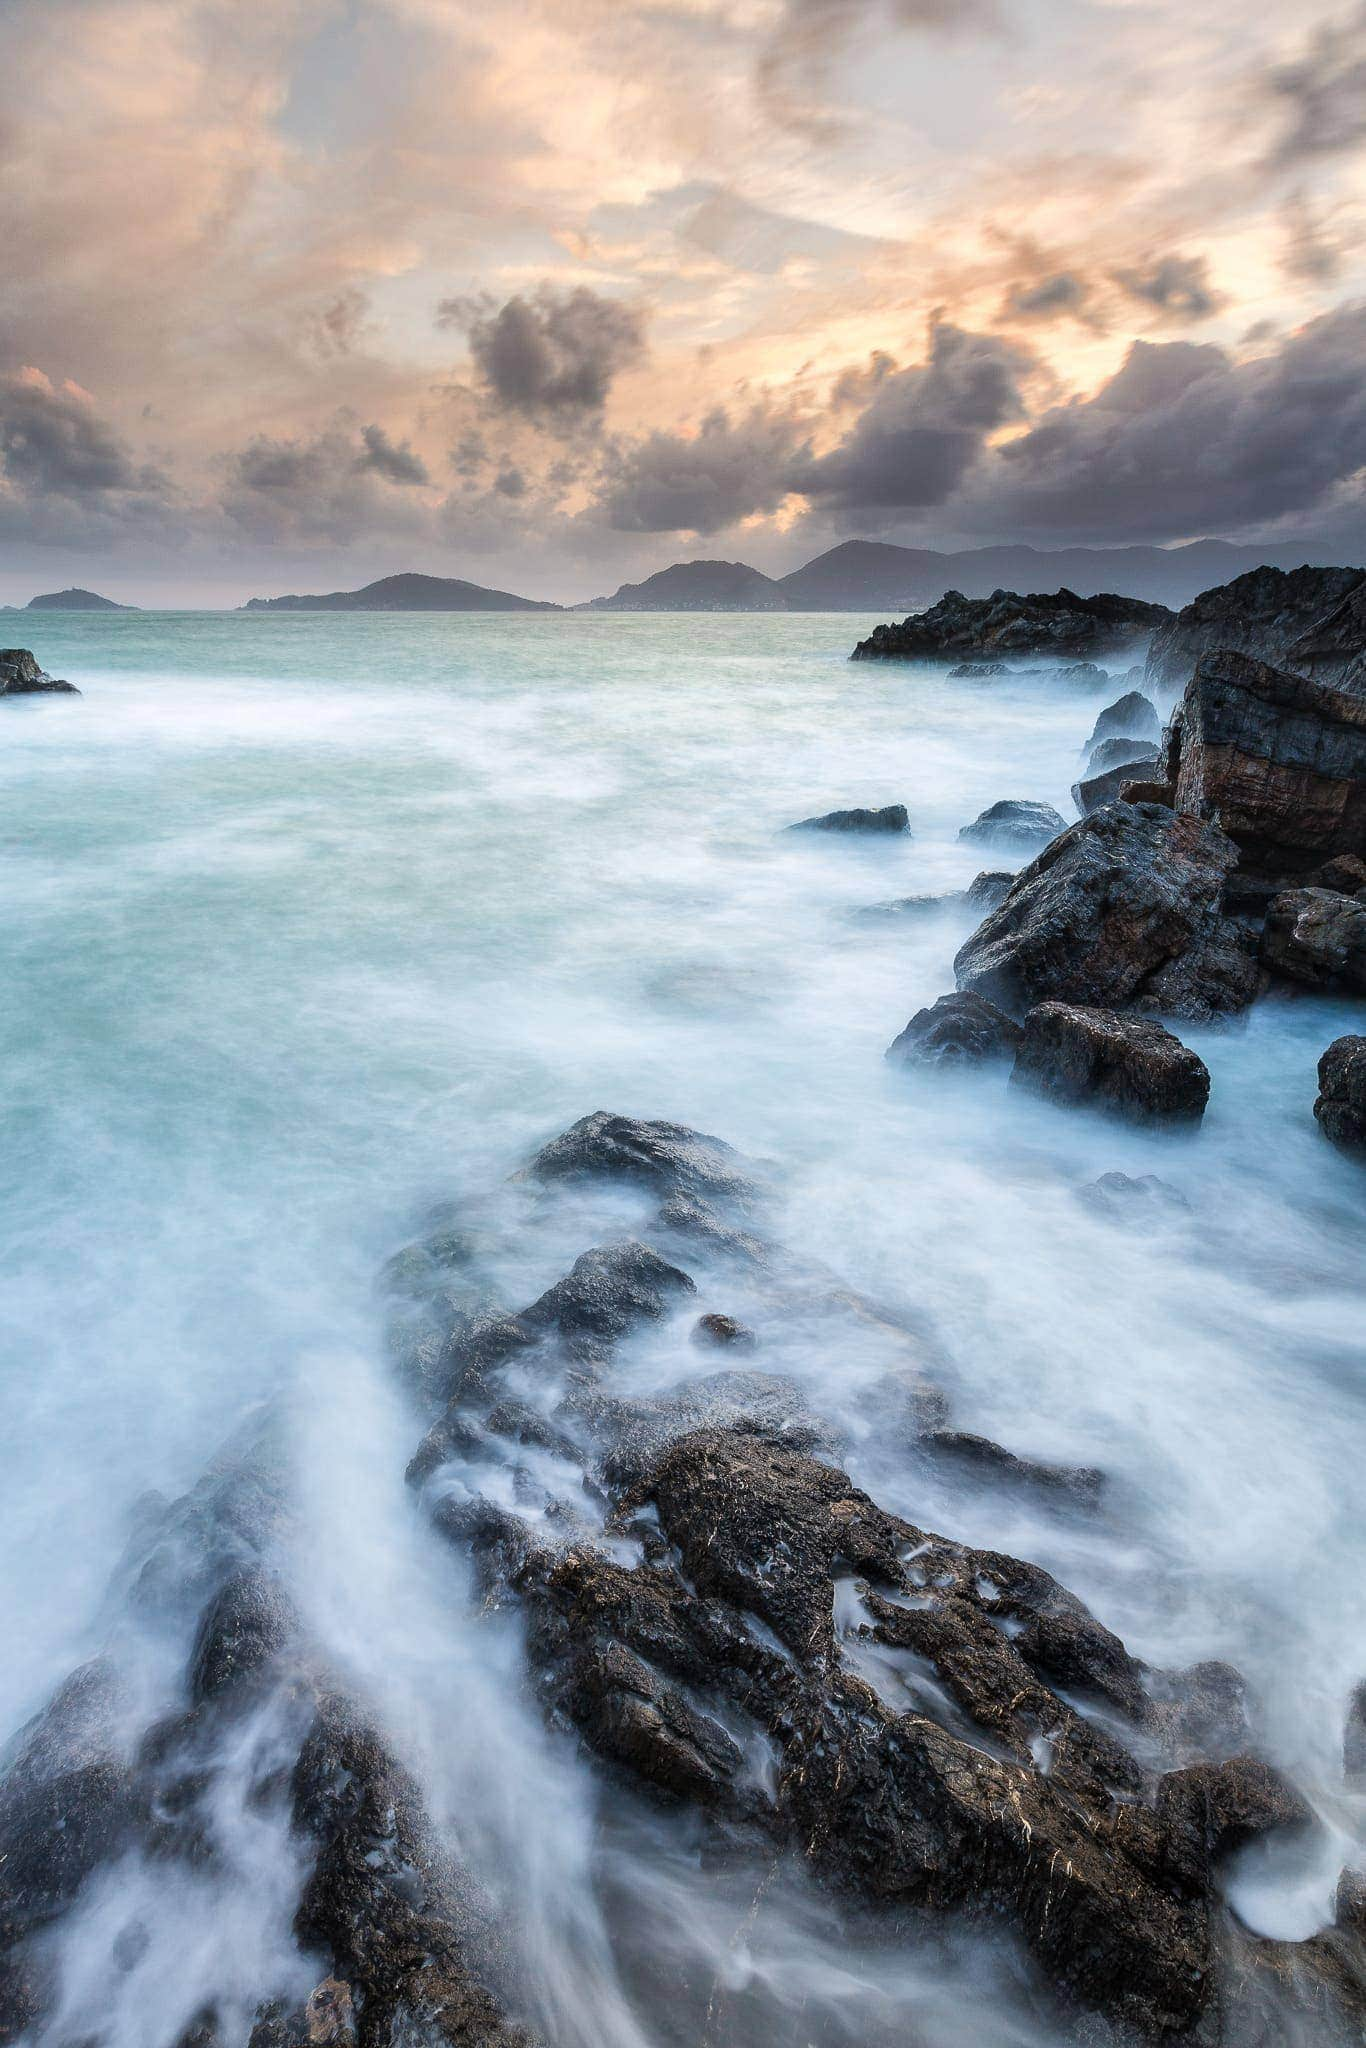 Francesco Gola Seascape Landscape Photography Tellaro Summer Storm Long Exposure